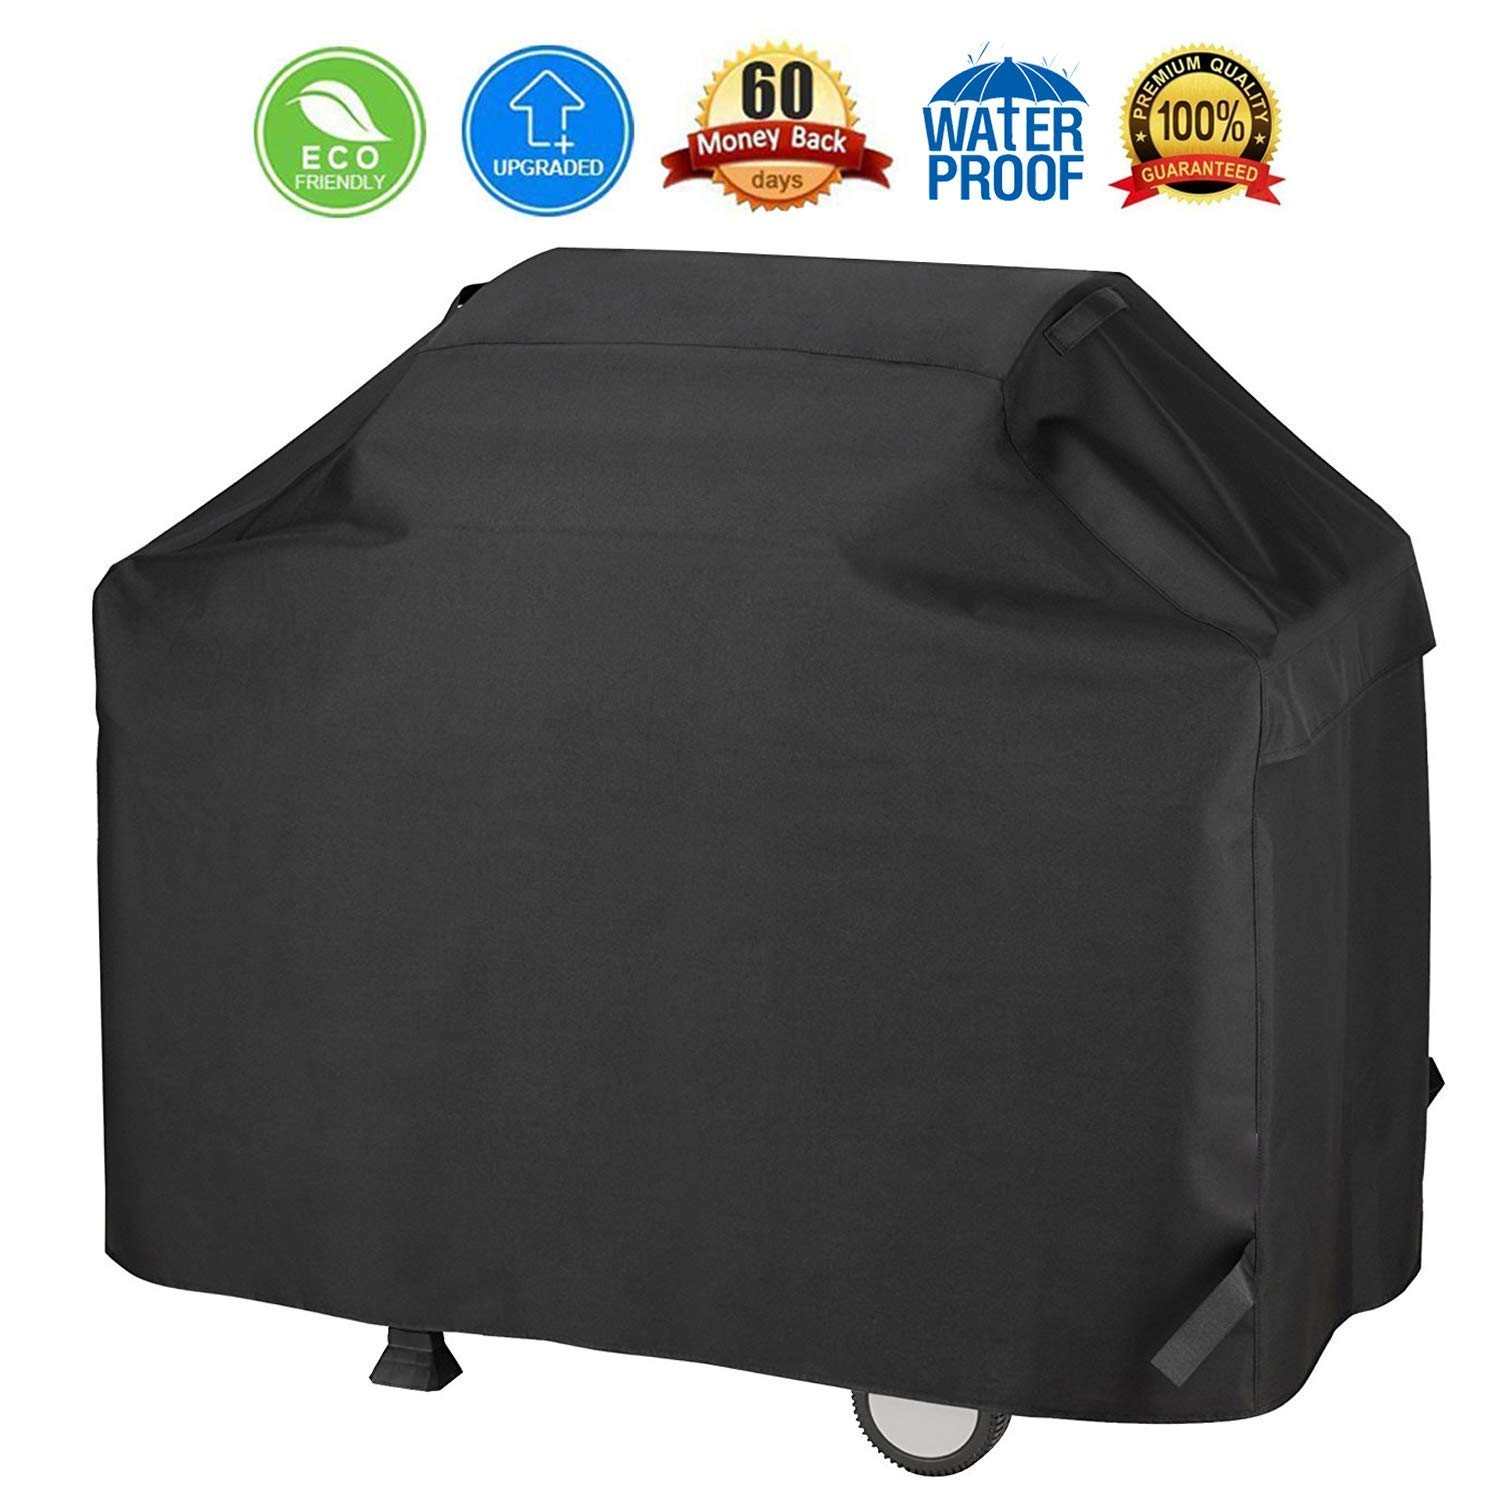 BBQ Grill Cover, 600D Waterproof Barbecue Cover Grill Cover 3-4 Burners Gas Grill Cover Barbecue Grill Cover Grill Protection Cover Heavy Duty Waterproof Dust-proof Tear-proof UV-proof(58 Inch/147 cm) Cosyzone